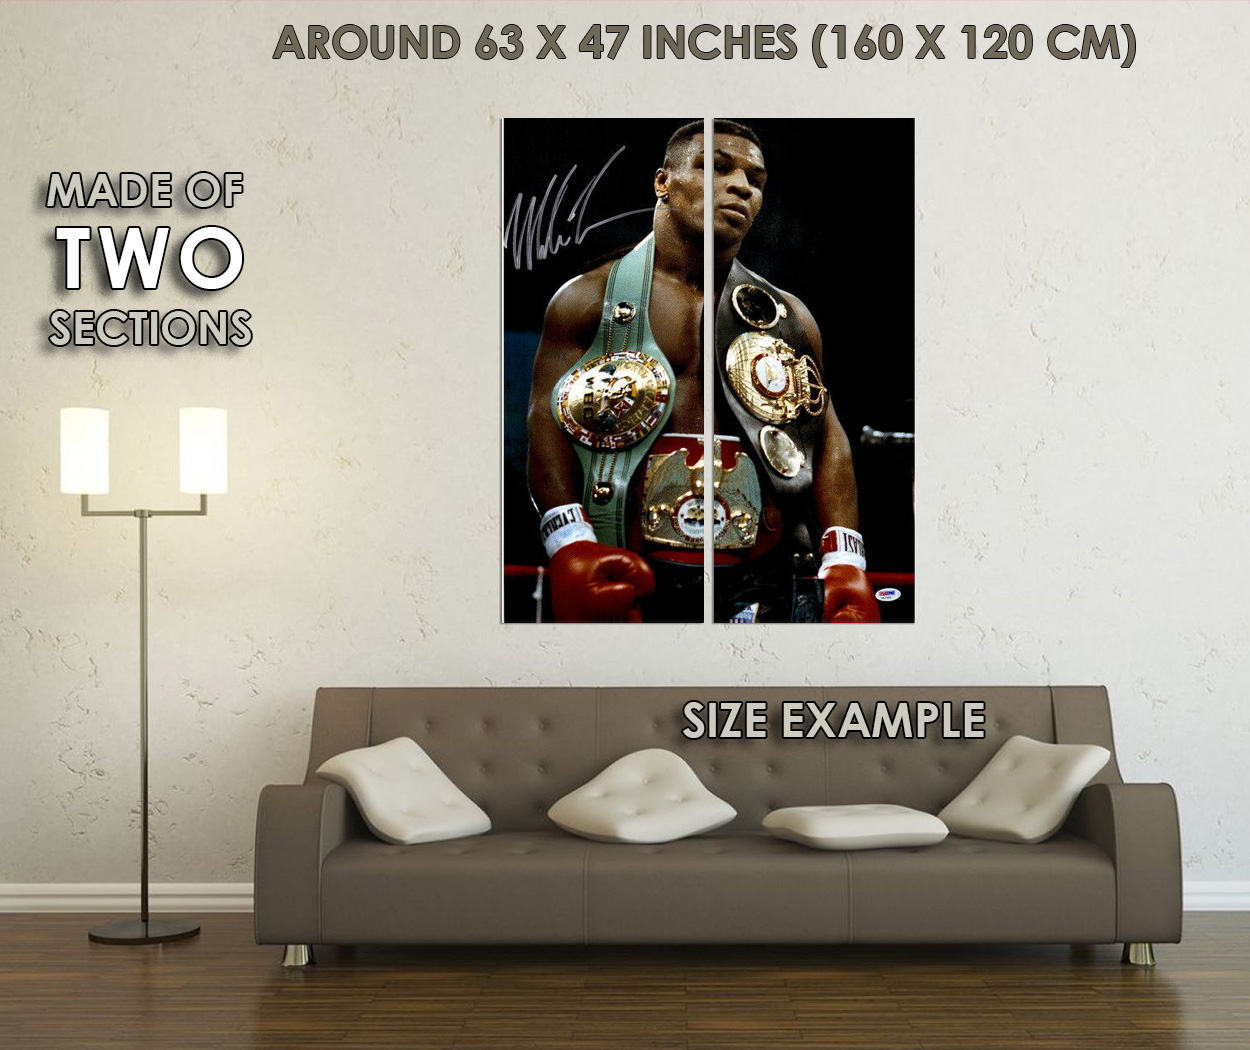 277259 Mike Tyson Great Fighter Boxing Super Star Sport PRINT GLOSSY POSTER DE